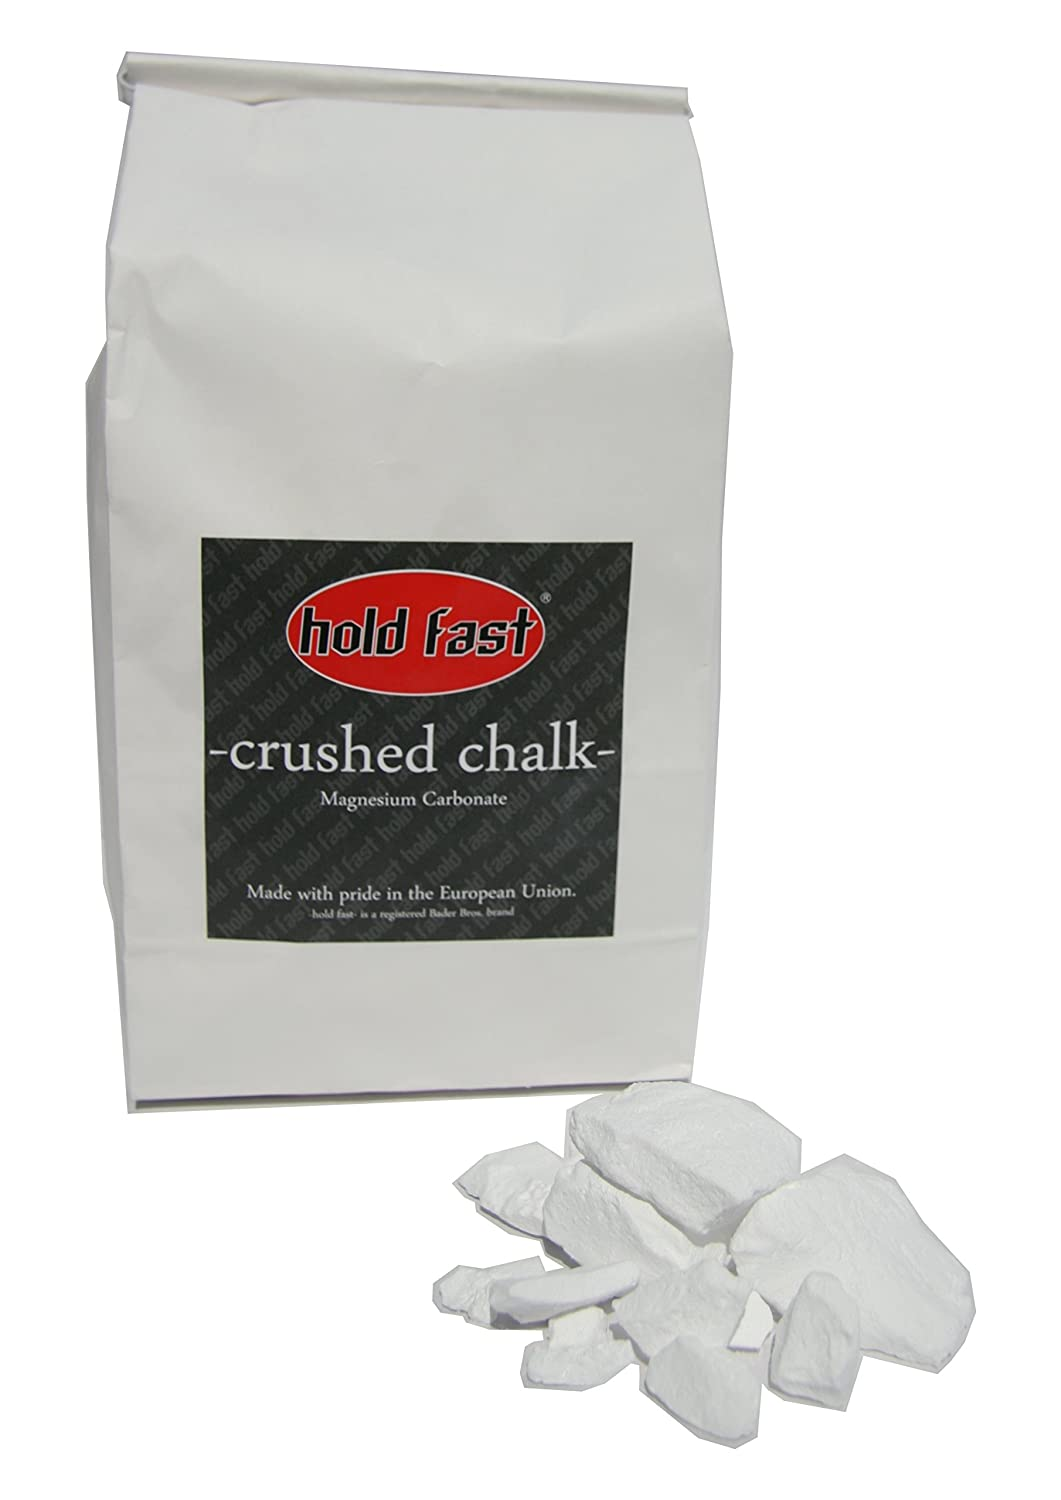 Hold Fast Crushed Chalk im 250G sacchetto, Magnesia, Arrampicata gesso Bader Bros. GbR